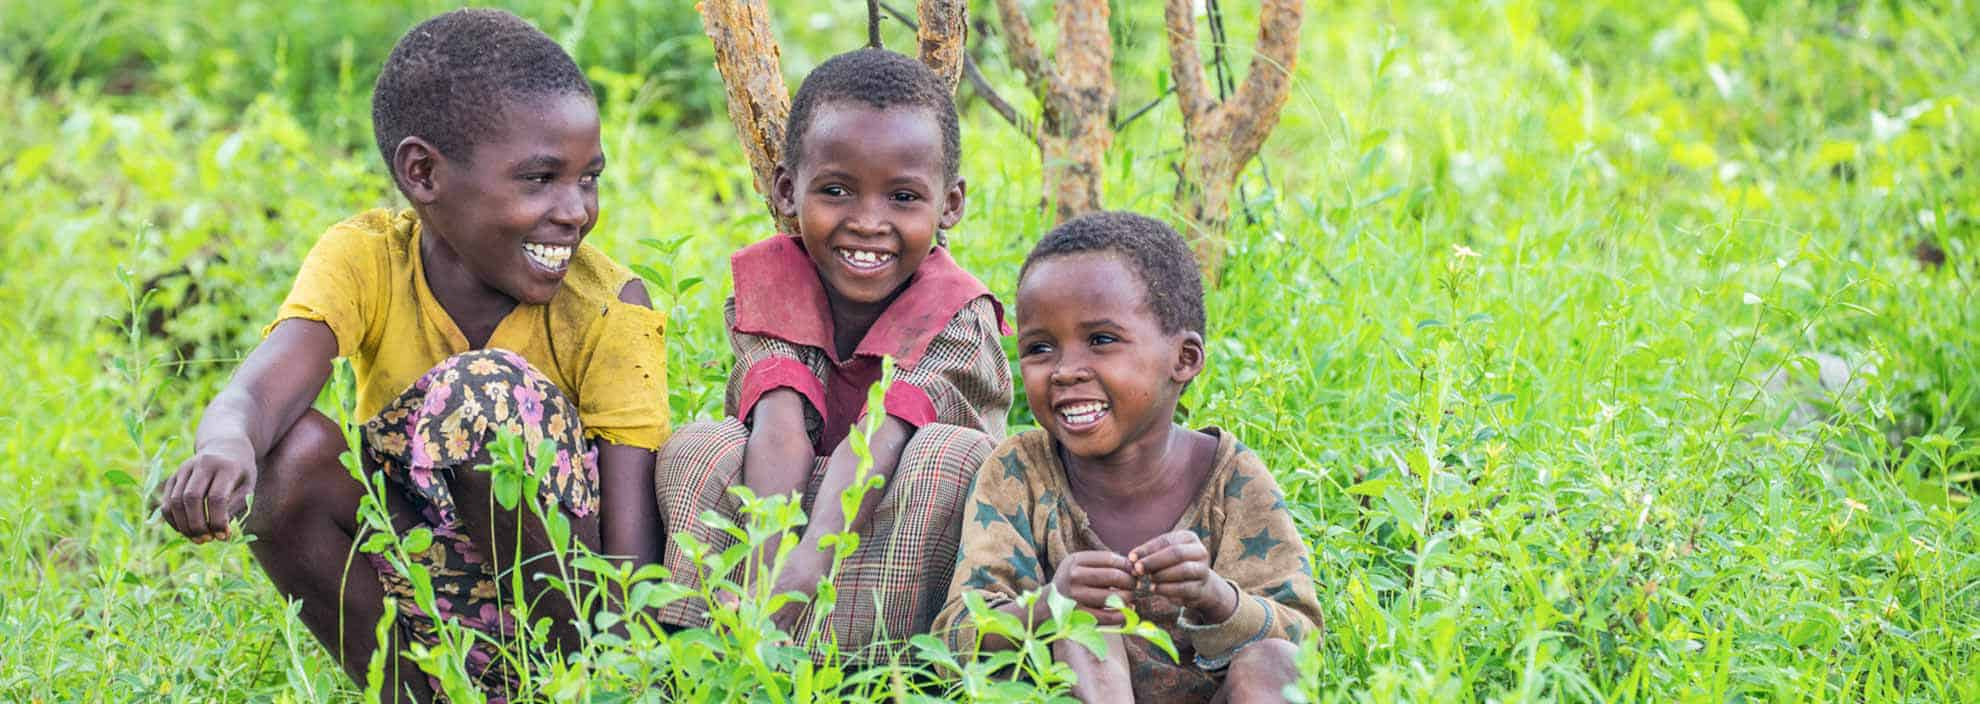 Children in the grass East Africa